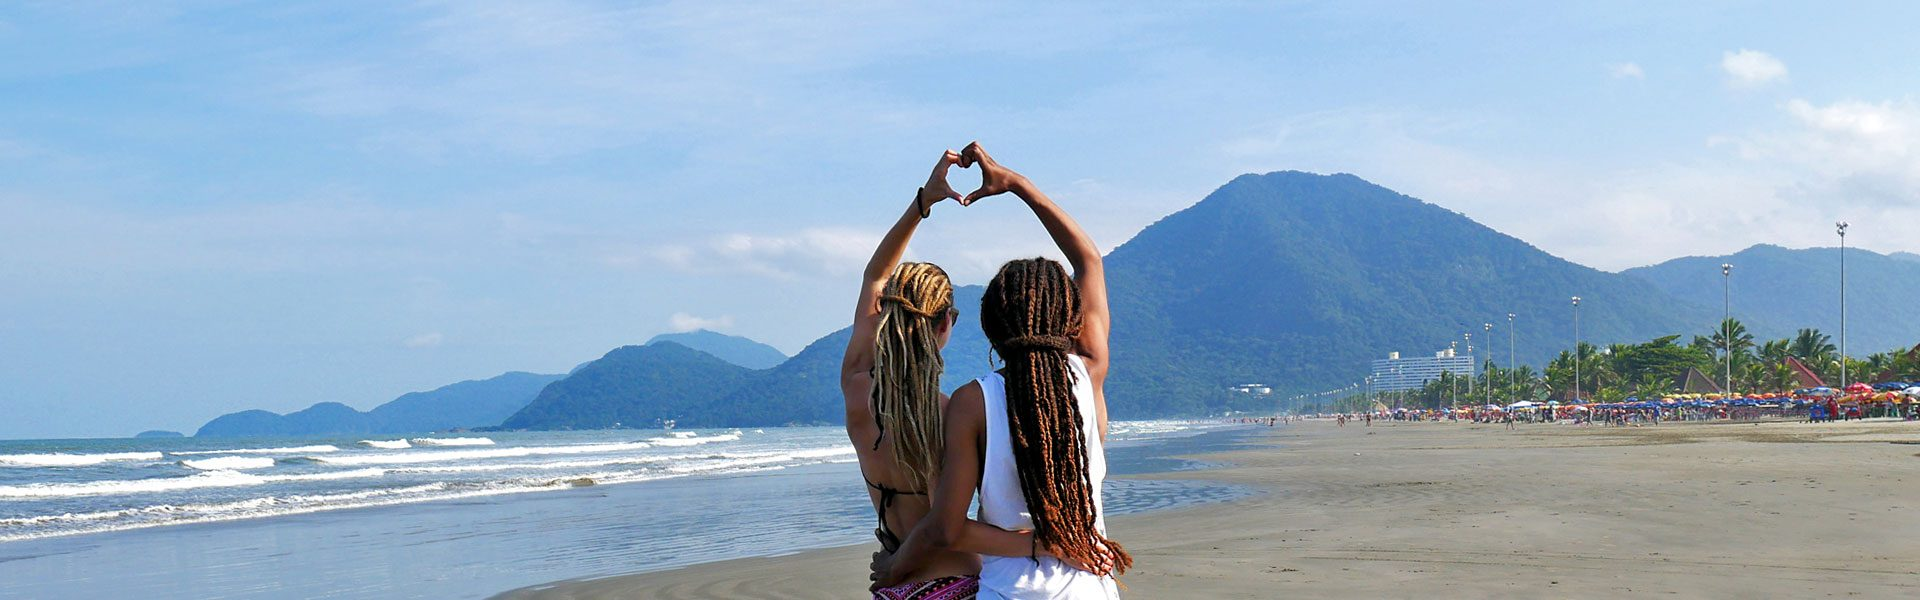 Dreadlock couple forming heart with hands at beach in Peruíbe, Brazil